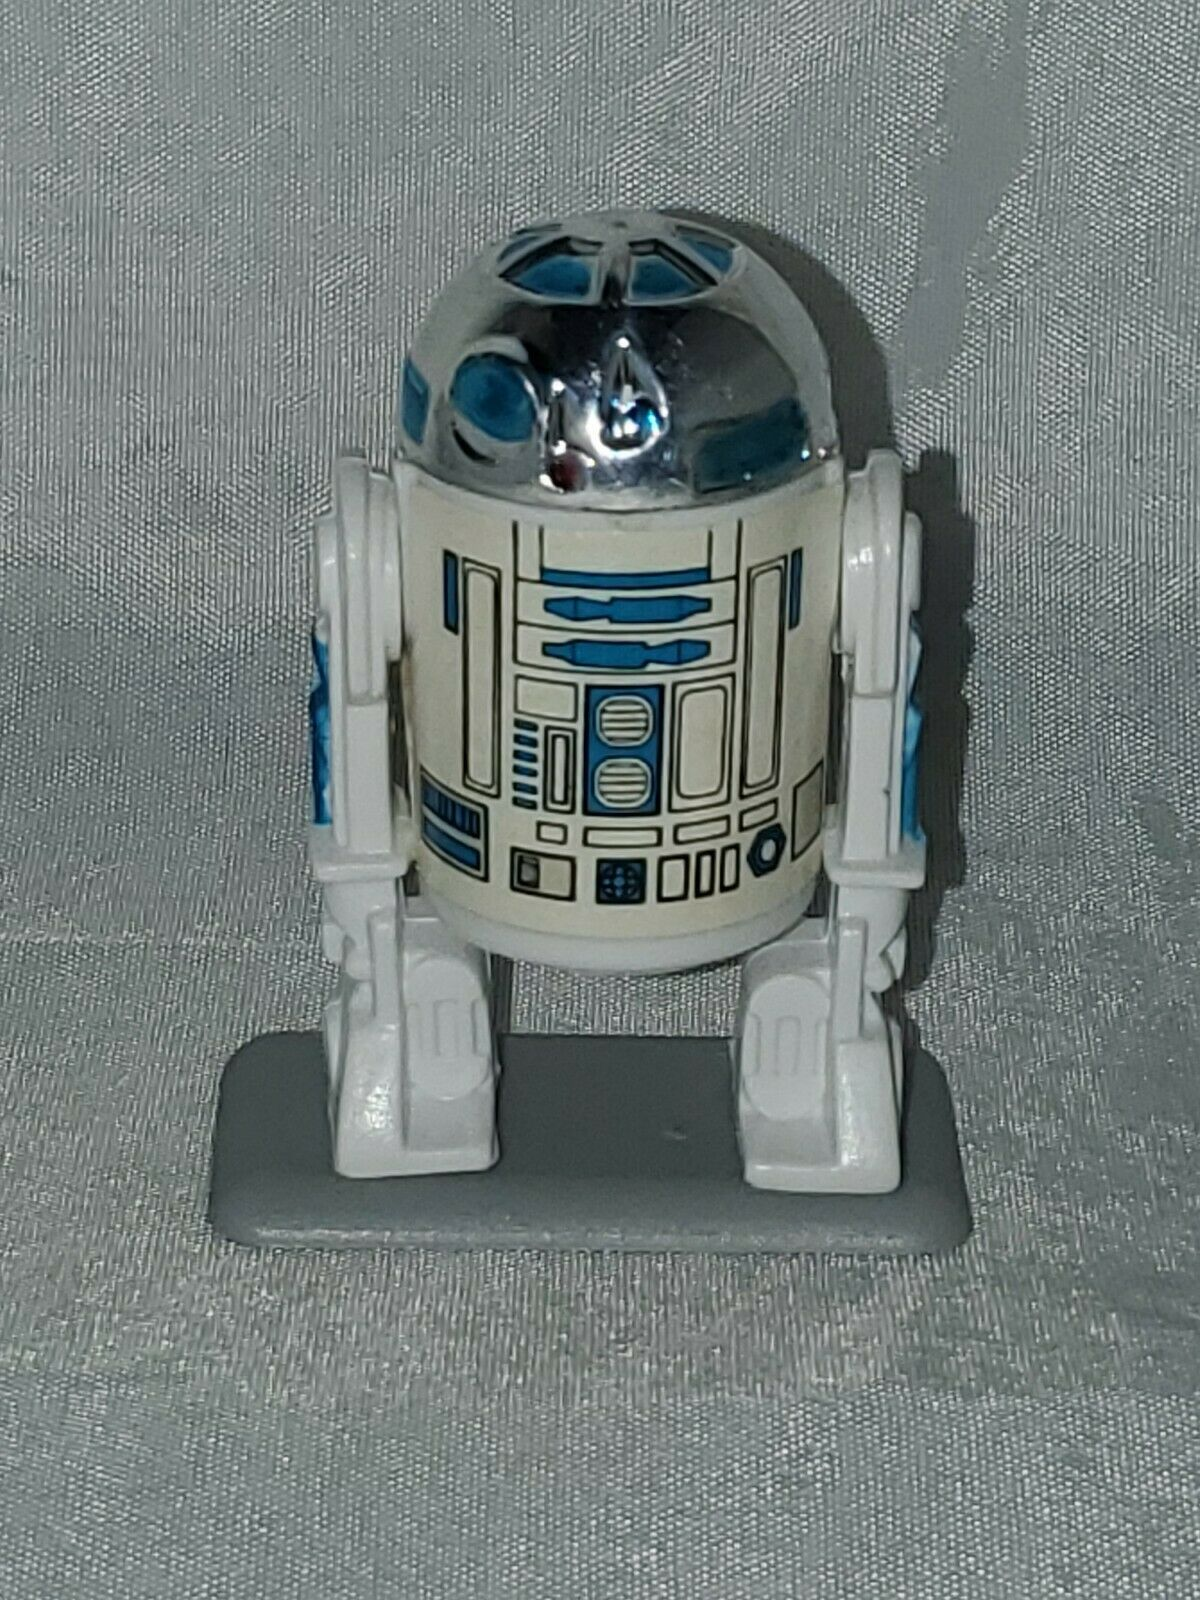 R2 - D2, 1977 st12 and 1977 TF